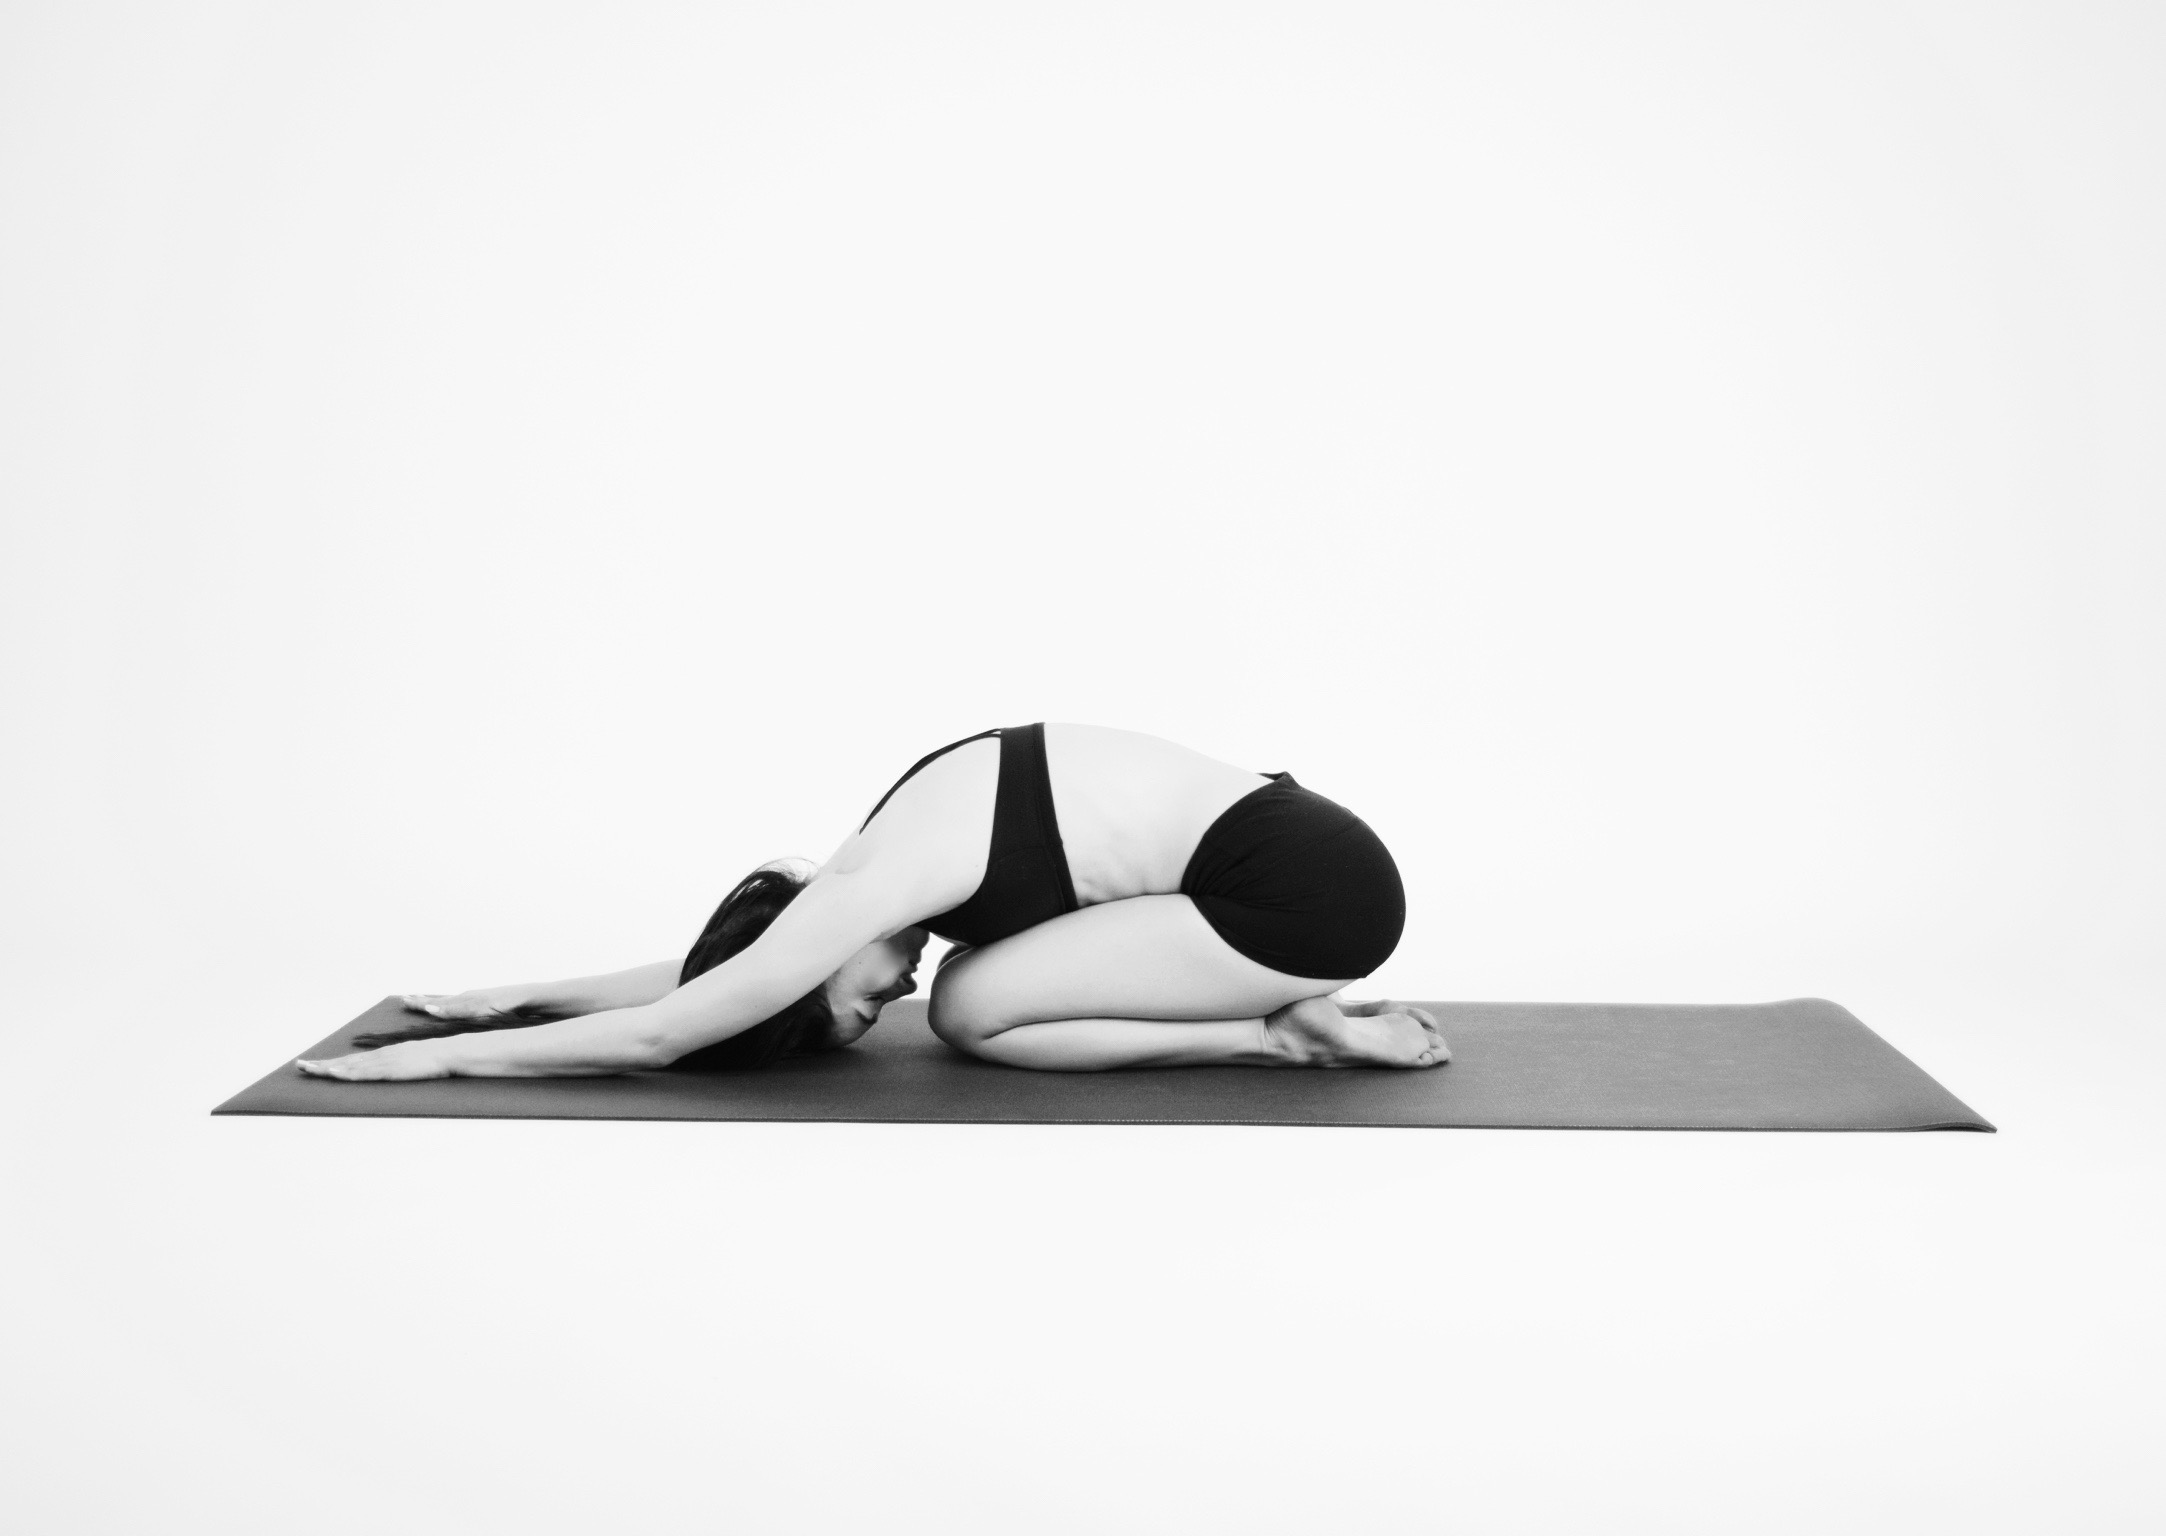 CHILD'S POSE  Start out in Child's Pose. From your hands and knees, sit your hips back onto your heels and rest your head down on your palms or the floor. Take 10 - 15 deep rounds of breath here.